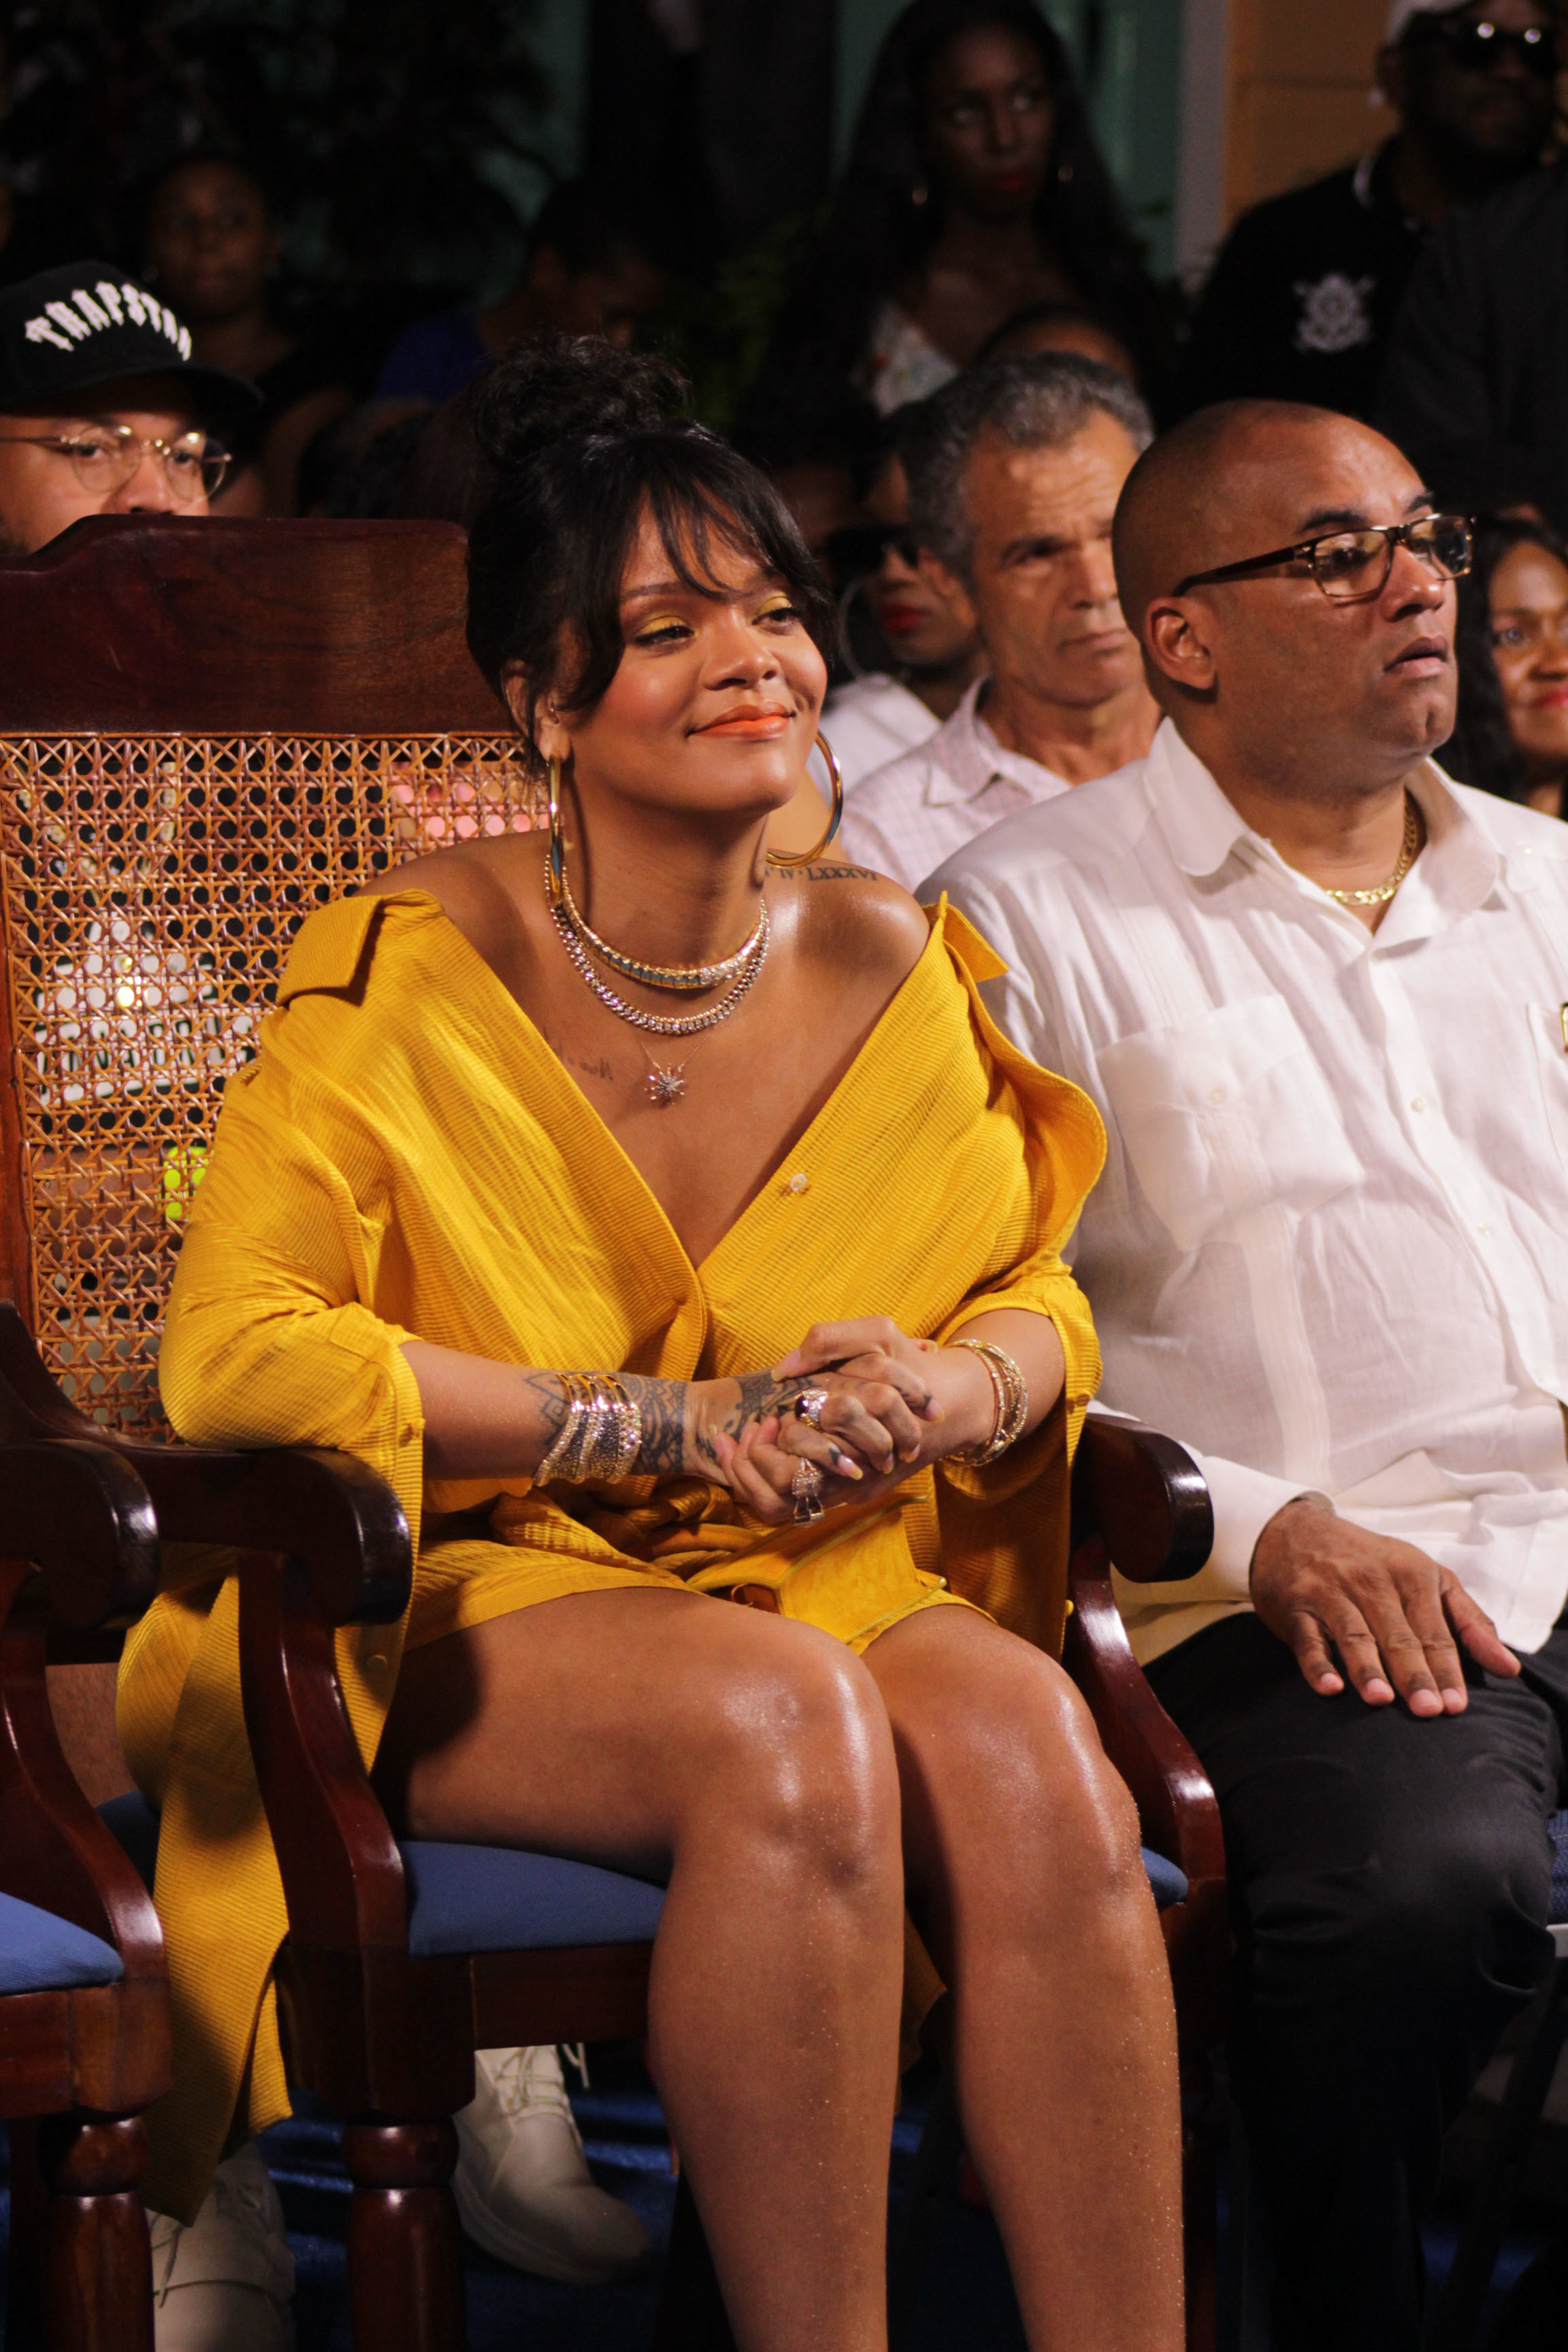 Rihanna attends a ceremony renaming the street where she grew up to Rihanna Drive in Barbados on Nov. 30, 2017.